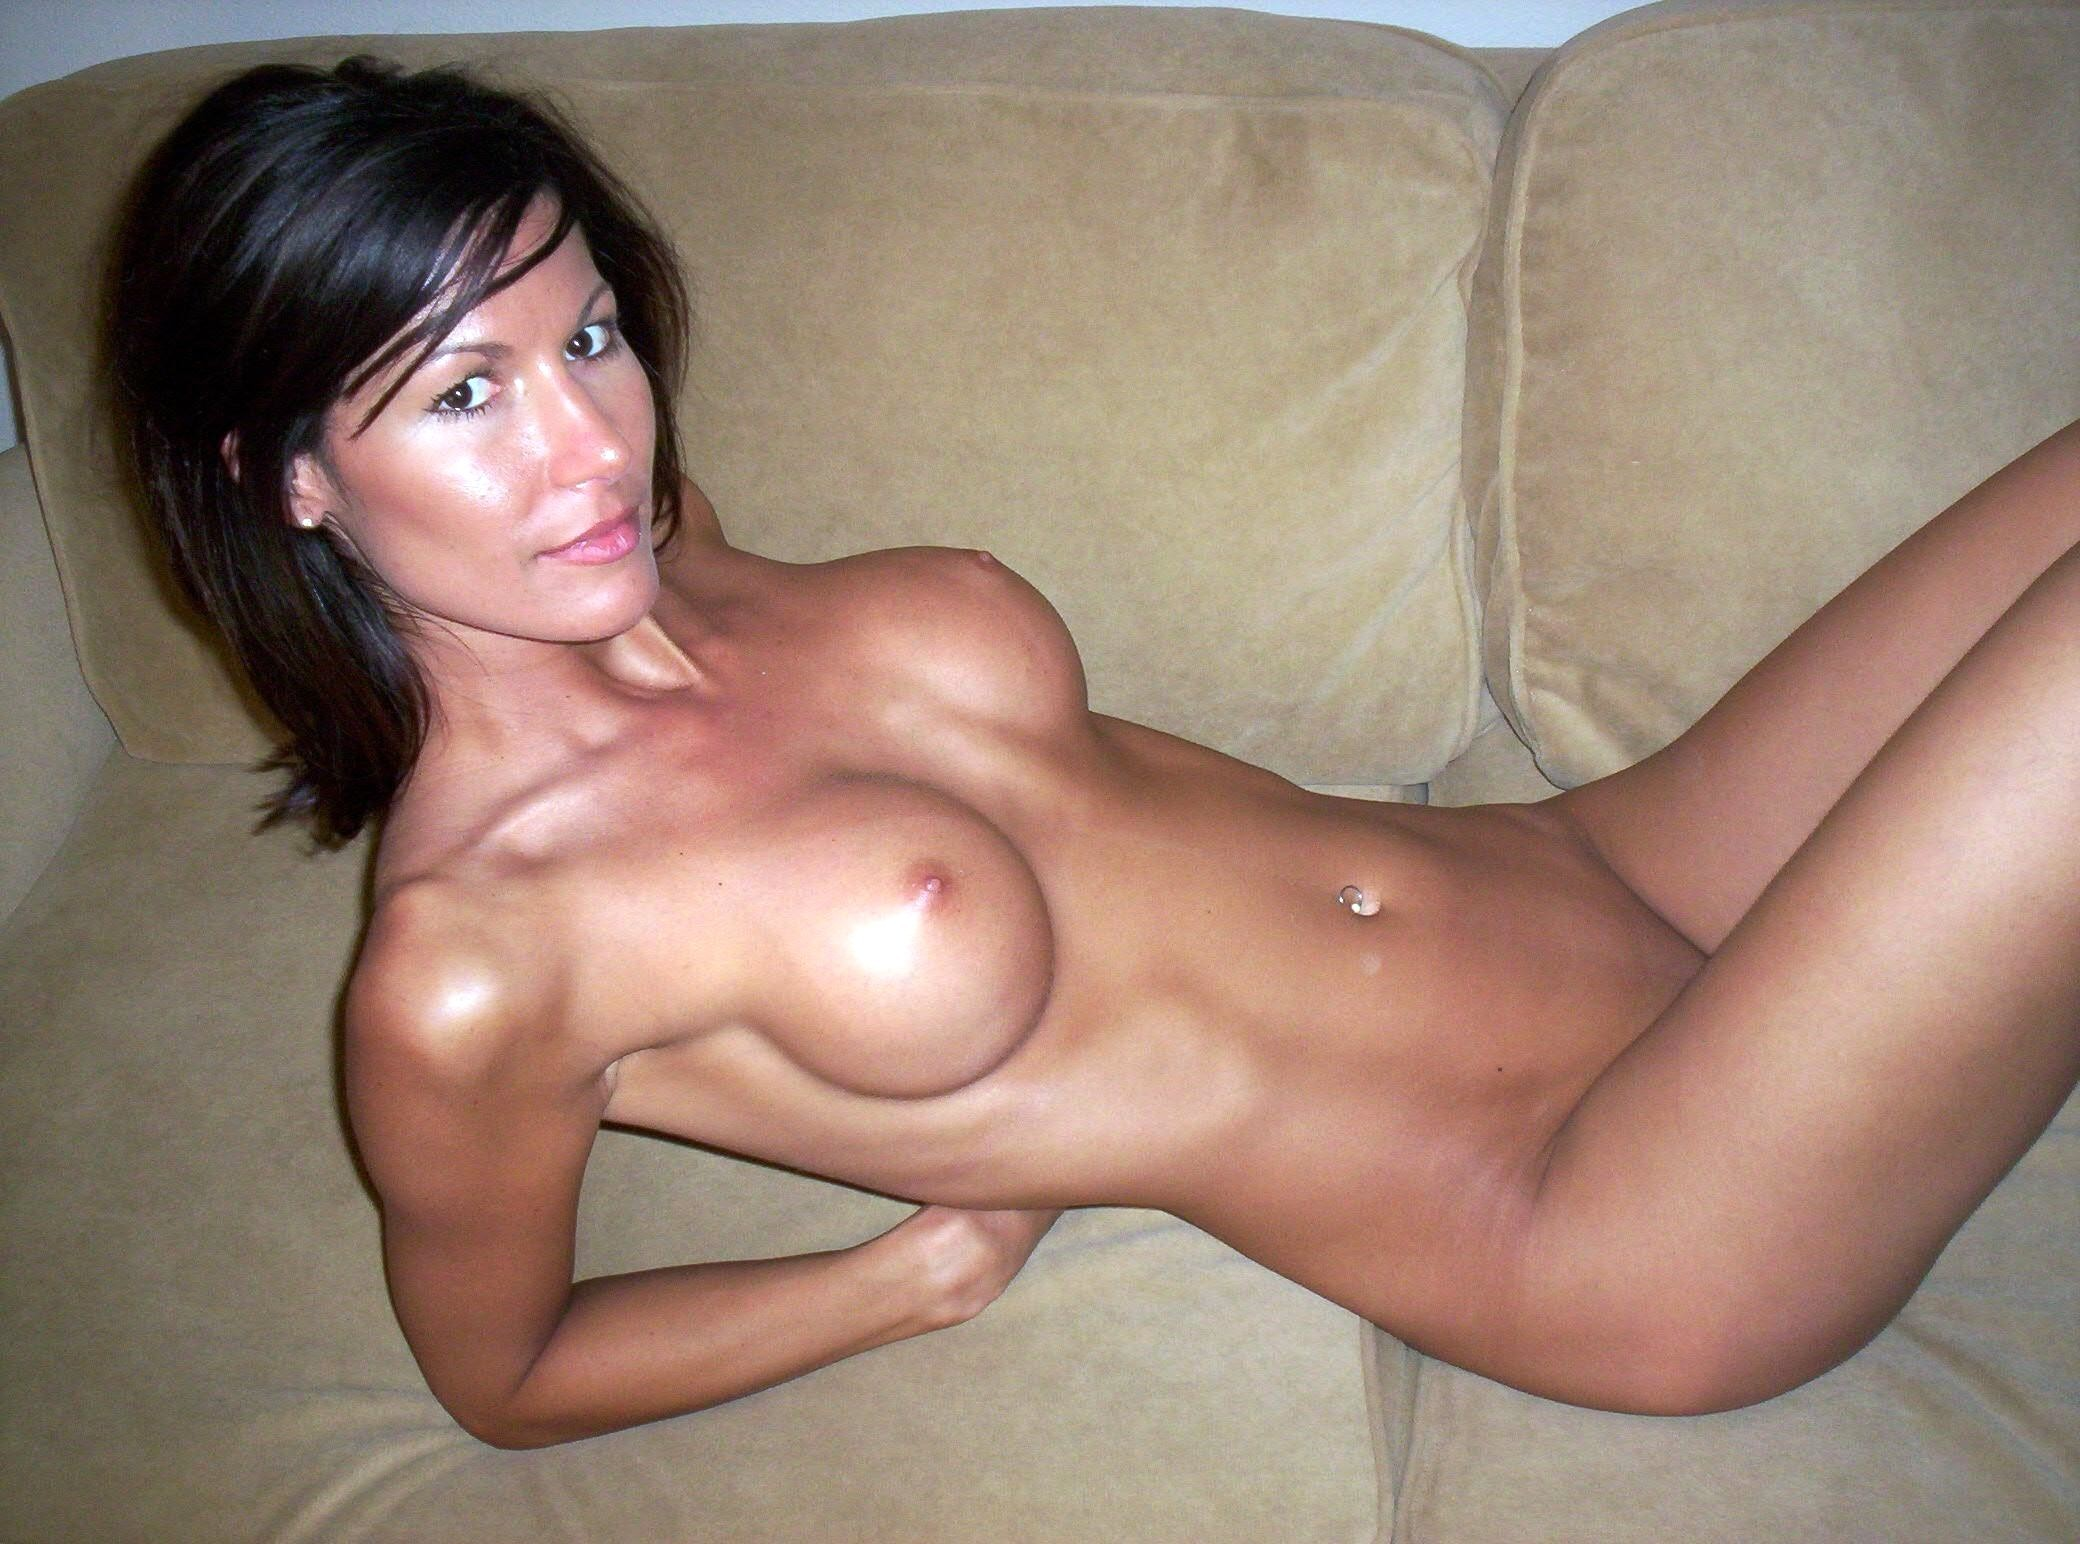 The milf couch